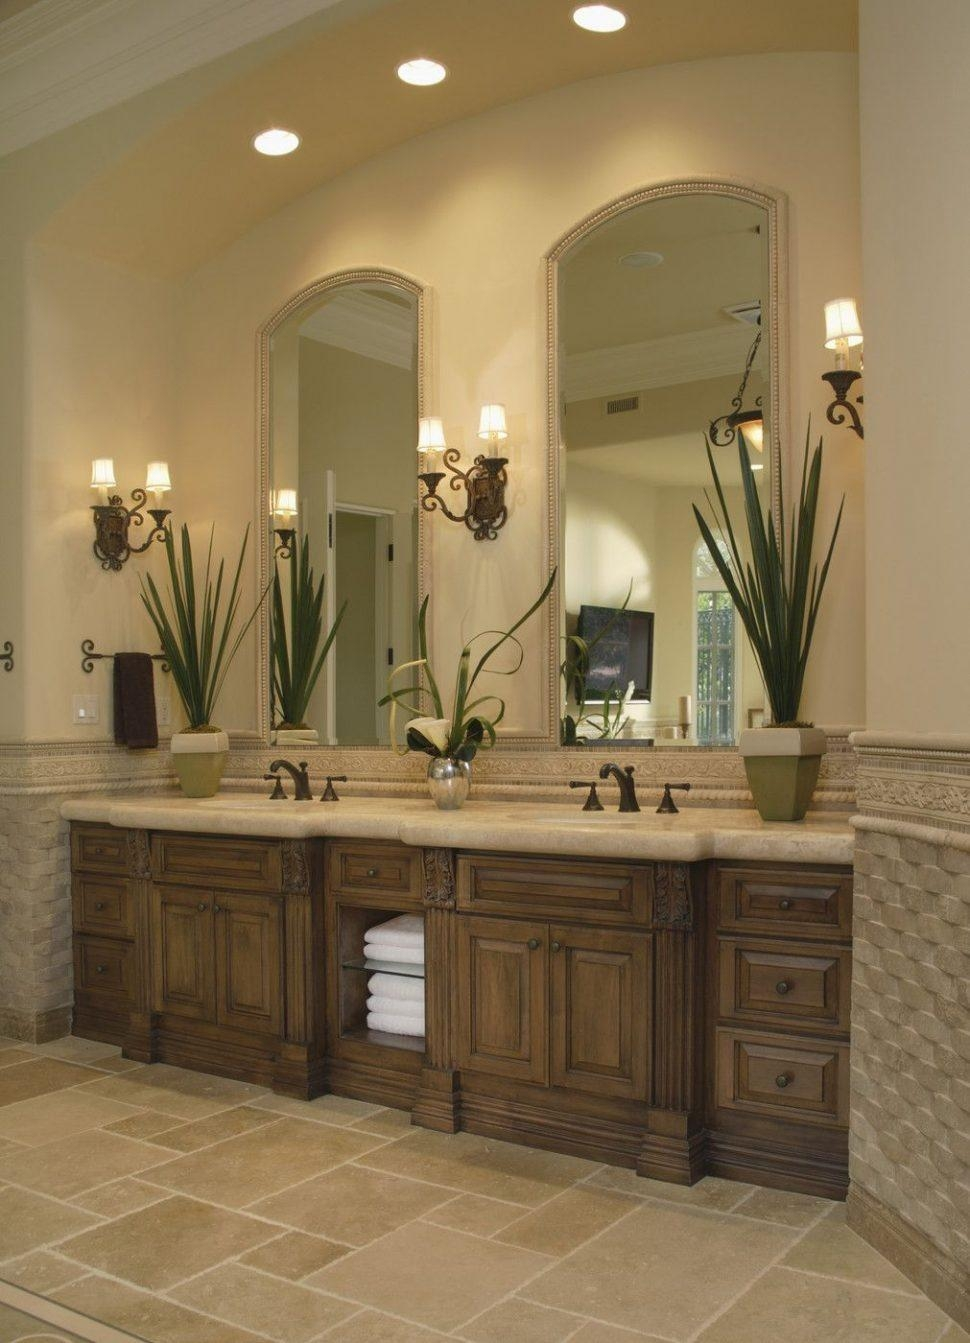 Bathroom Cabinets : Arms With Extension Mirrors Bathroom Pertaining To Bathroom Extension Mirrors (View 14 of 20)